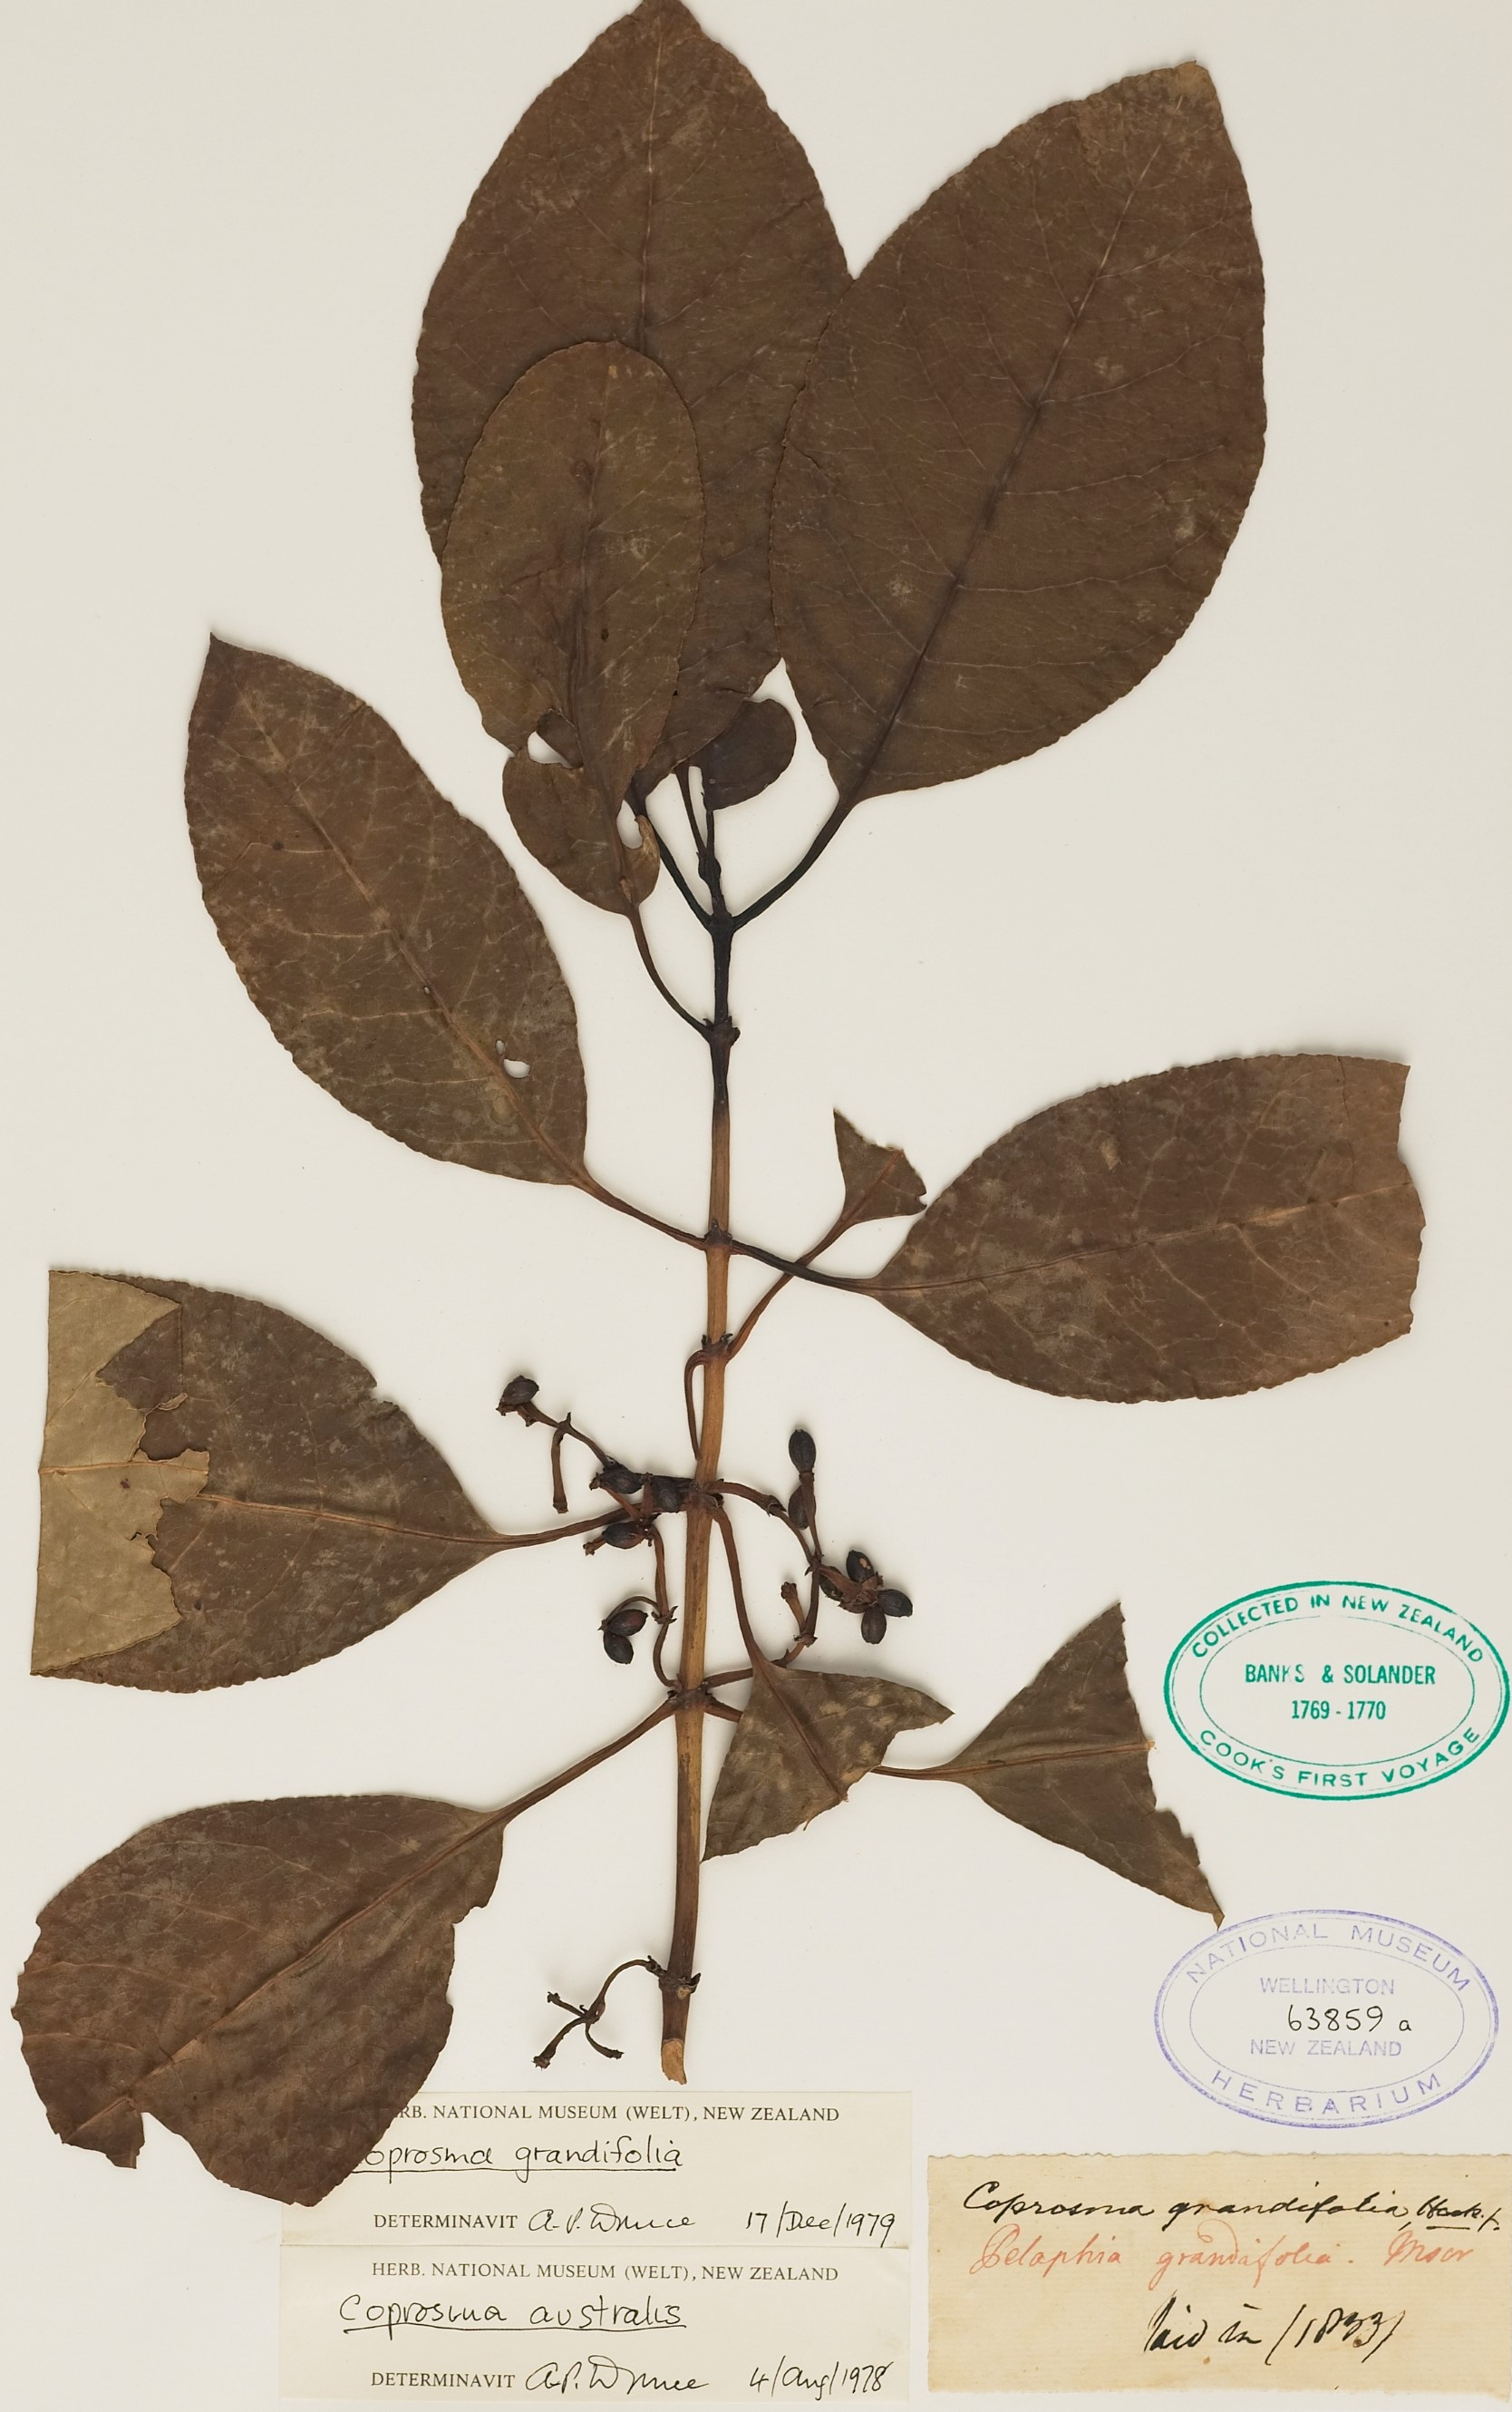 Brown leaves on a twig branch pressed on cream card with official notes and stamps